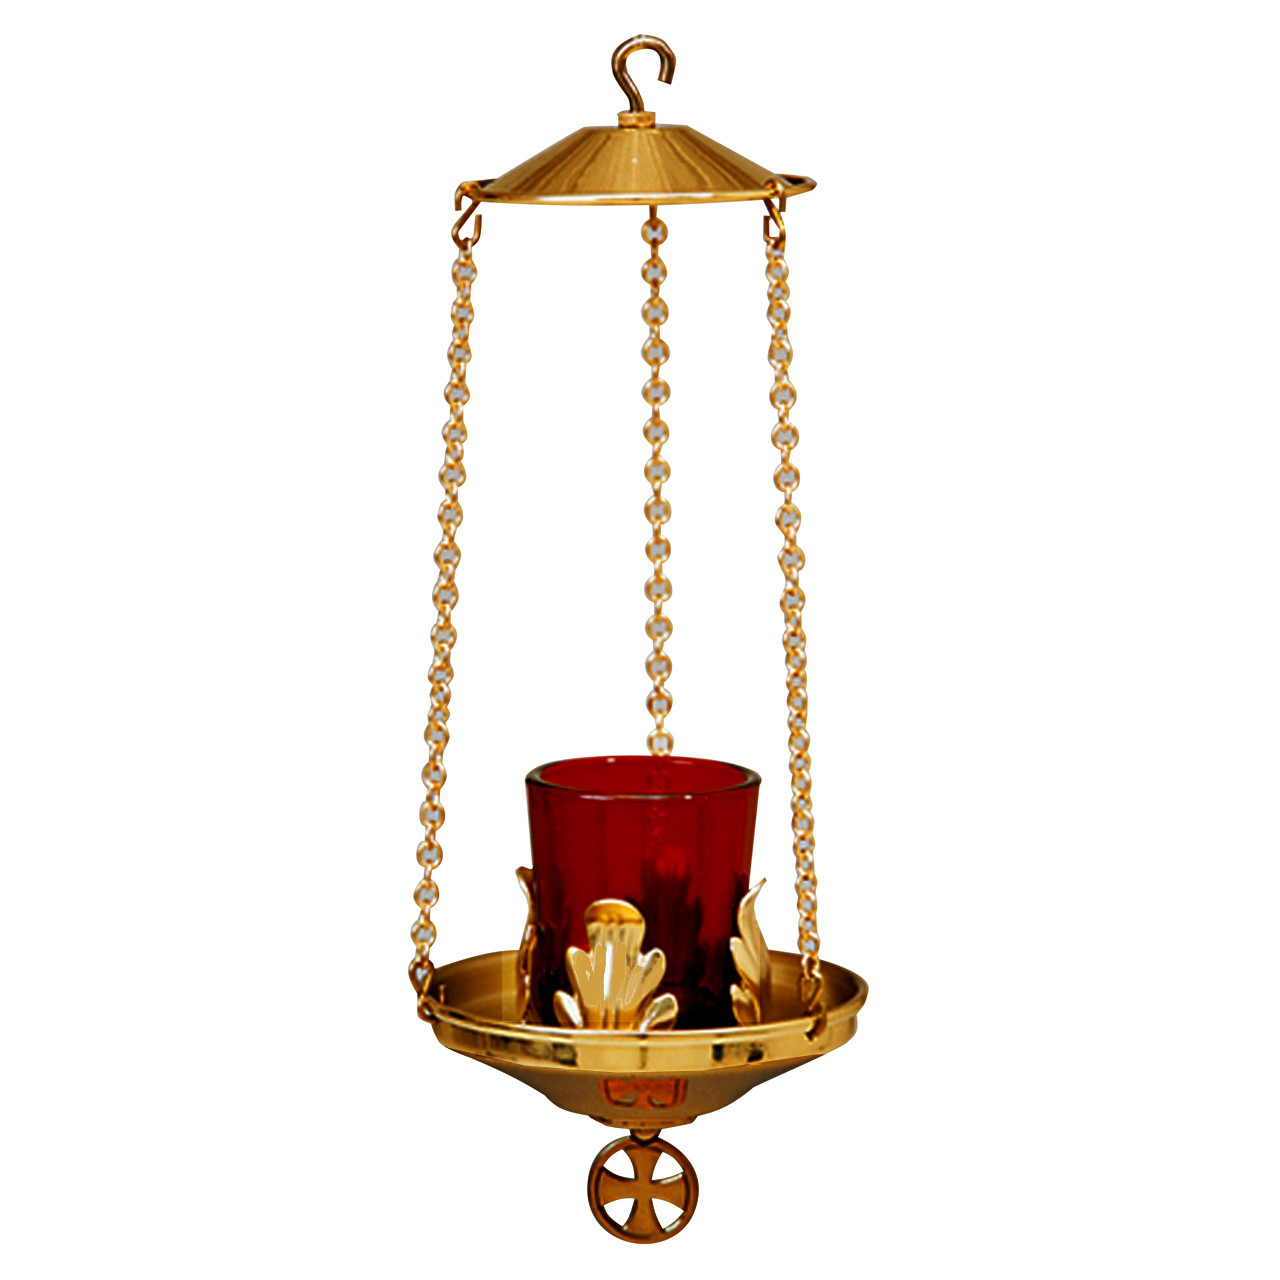 K163 Hanging Votive Lamp from Koleys